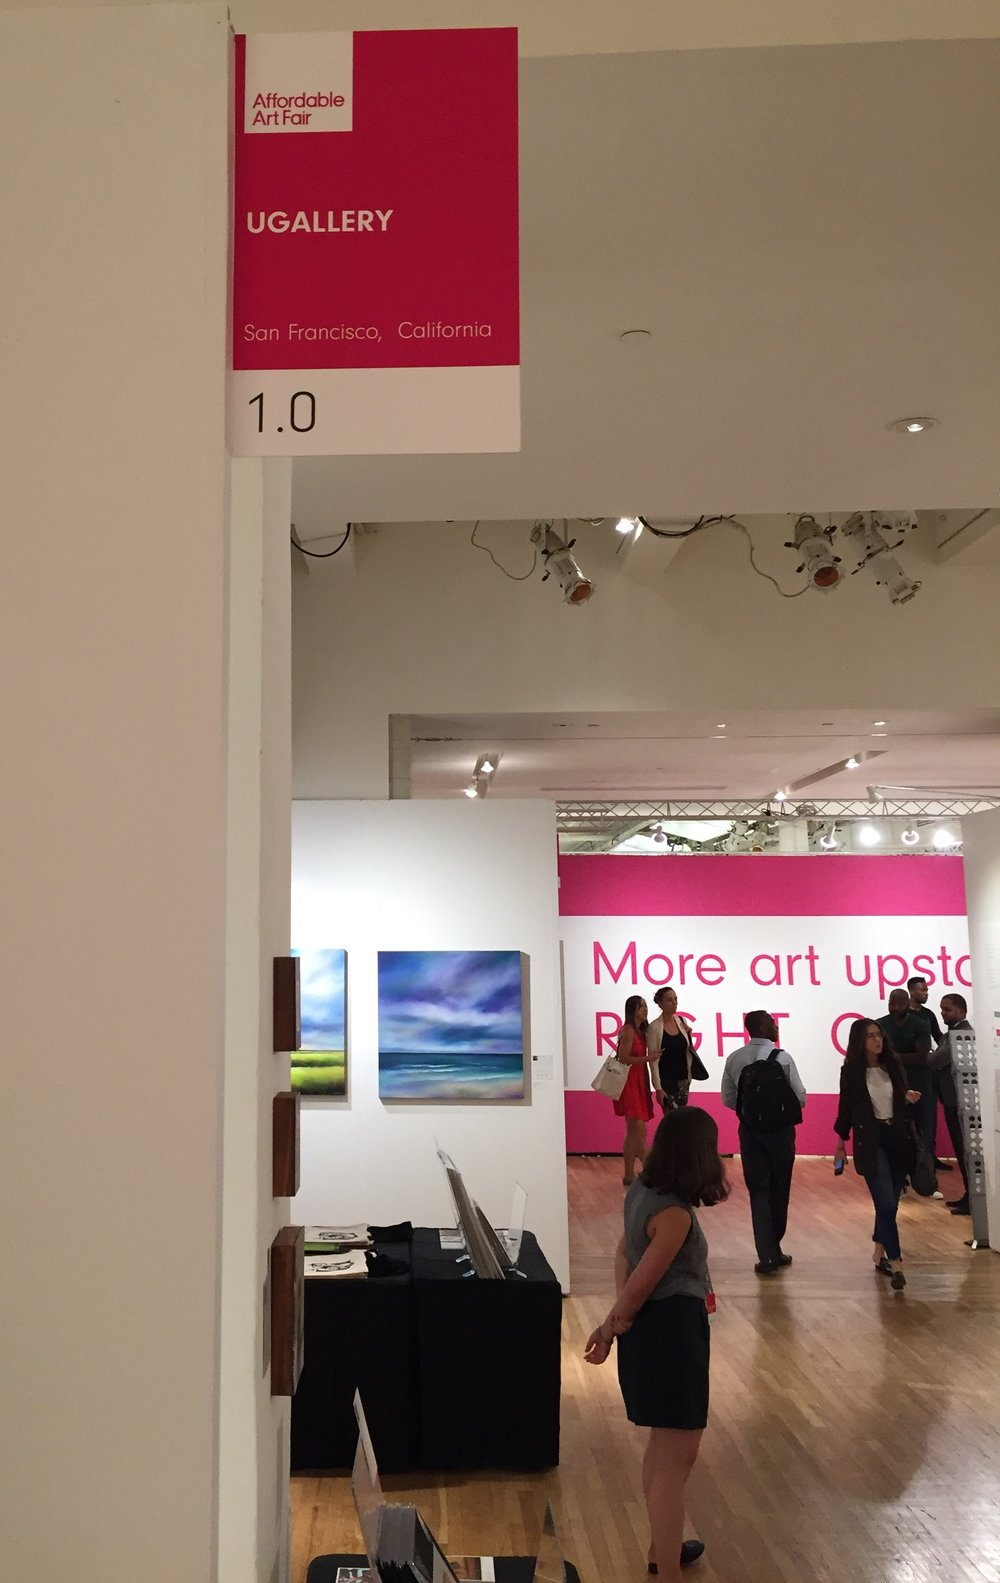 UGallery as the featured booth, #1.0